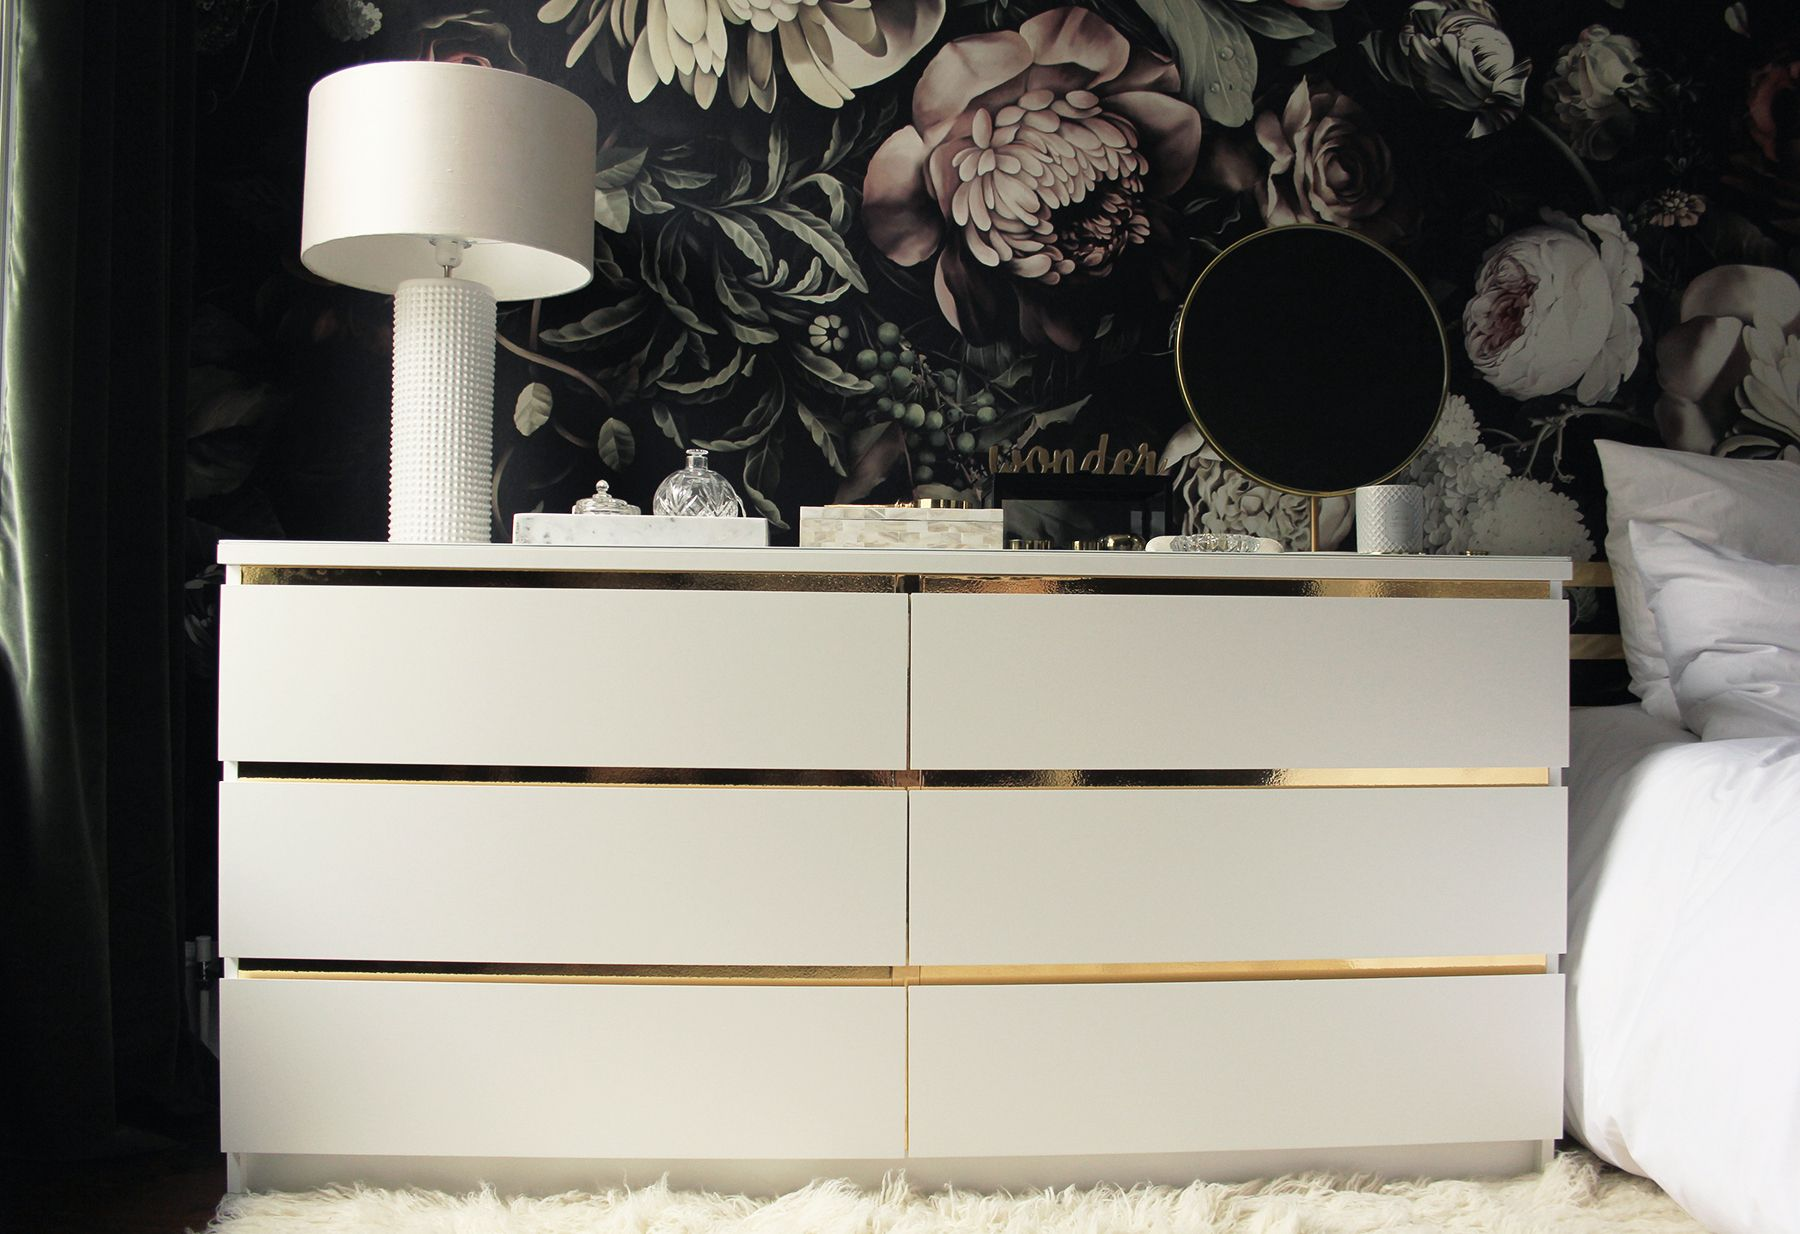 Malm Kommode Shabby Chic Fantastic Ikea Storage Hacks You Totally Need To See Crafts